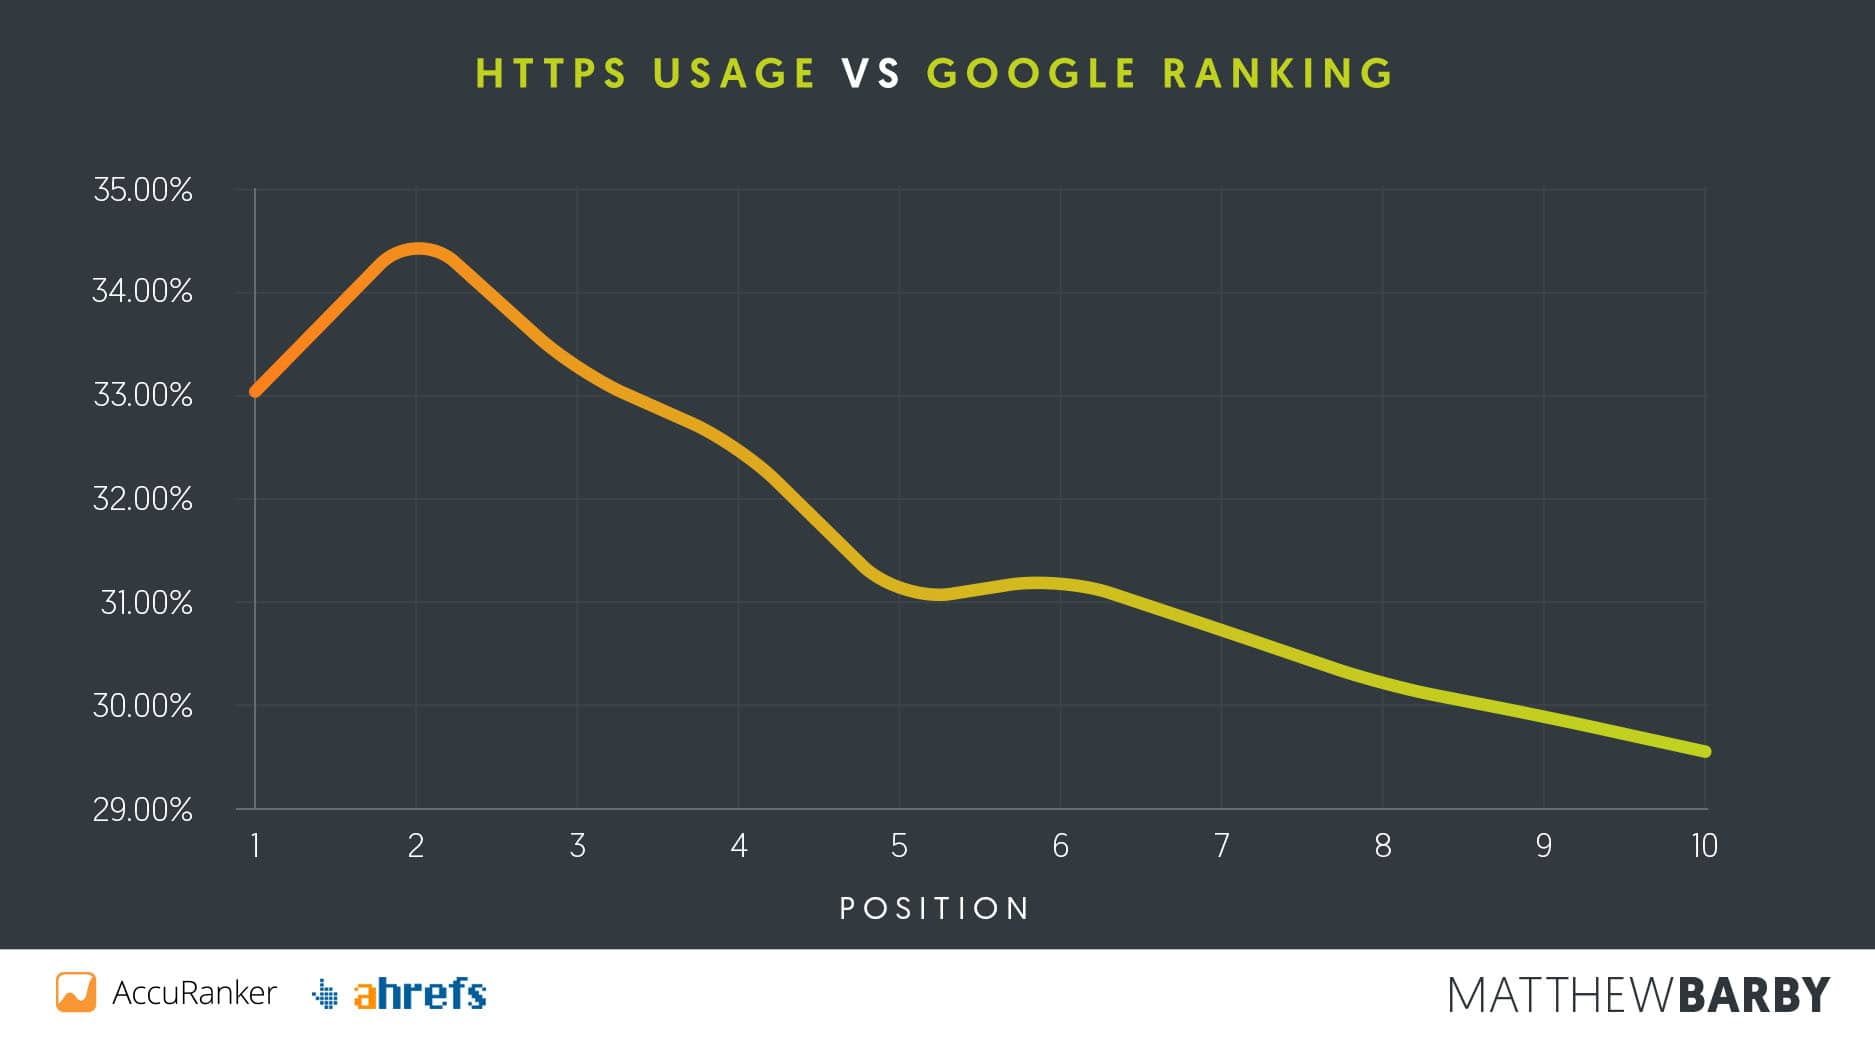 Uso de HTTPS vs. ranking do Google